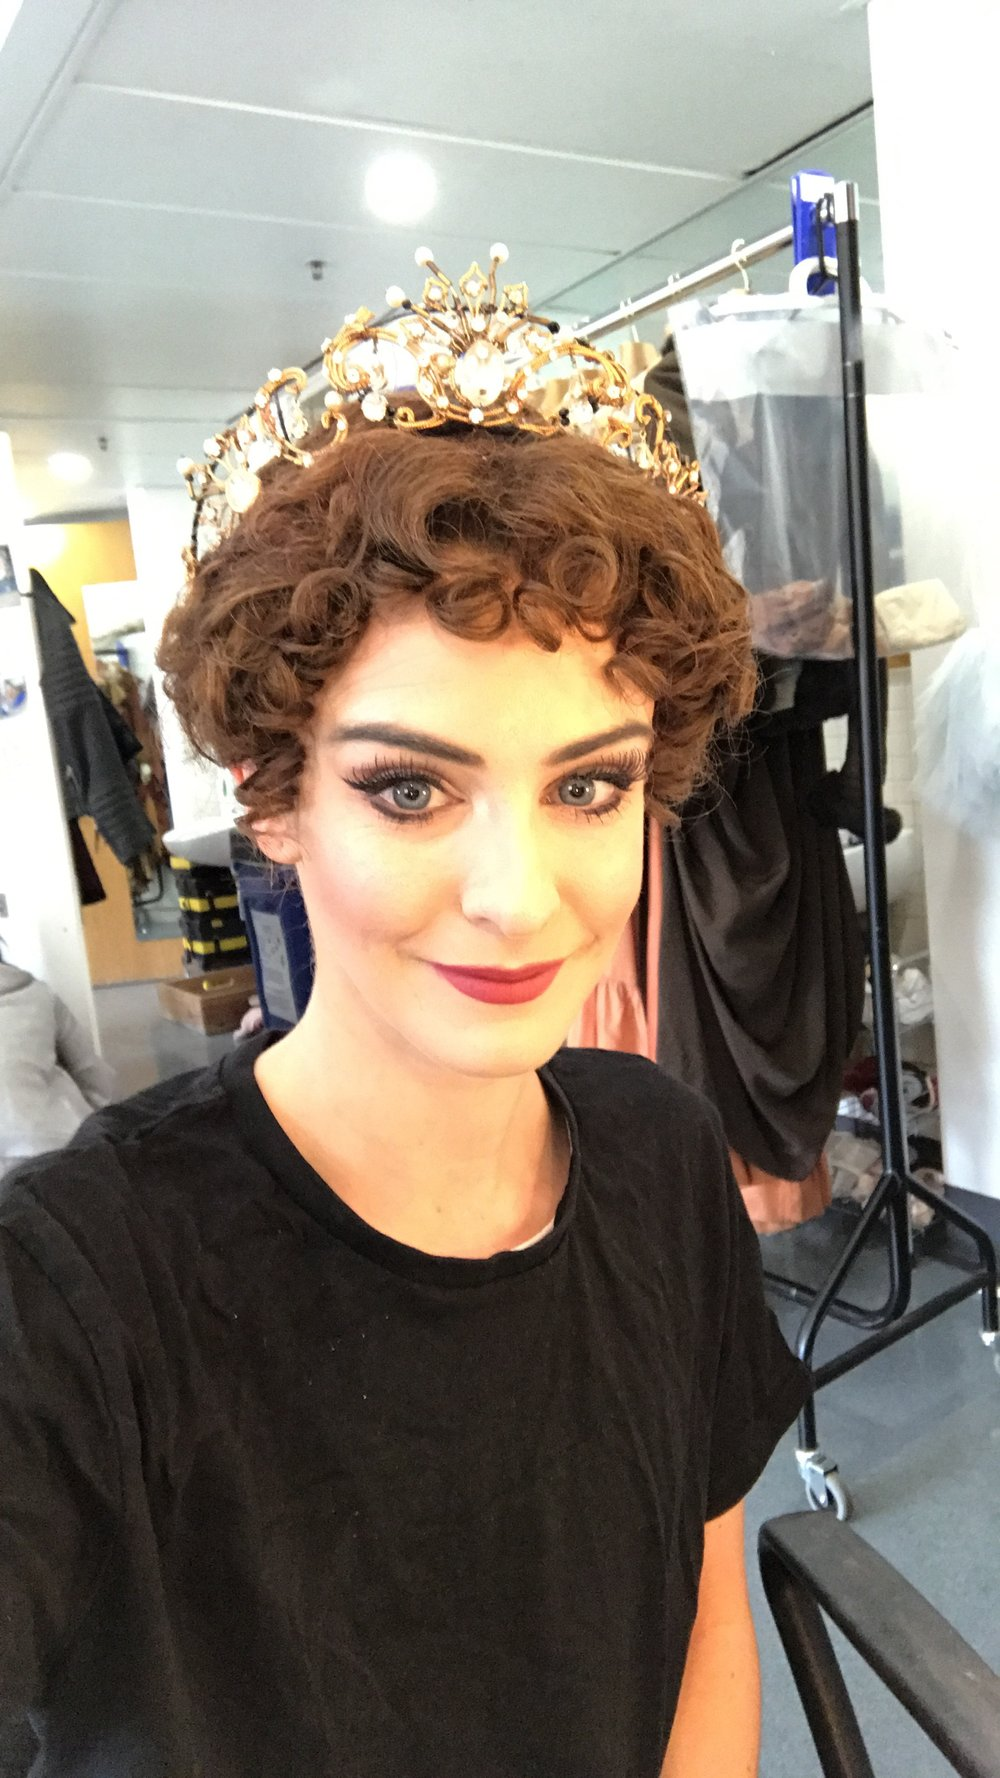 THIS WIG IS NOT THE MOST FLATTERING, BUT I KIND OF LOVE IT AS IT REALLY DOES PUT ME INTO MY ROLE - THE AMBITIOUS DESPERATE LADY THAT COUNTESS LARISCH IS.